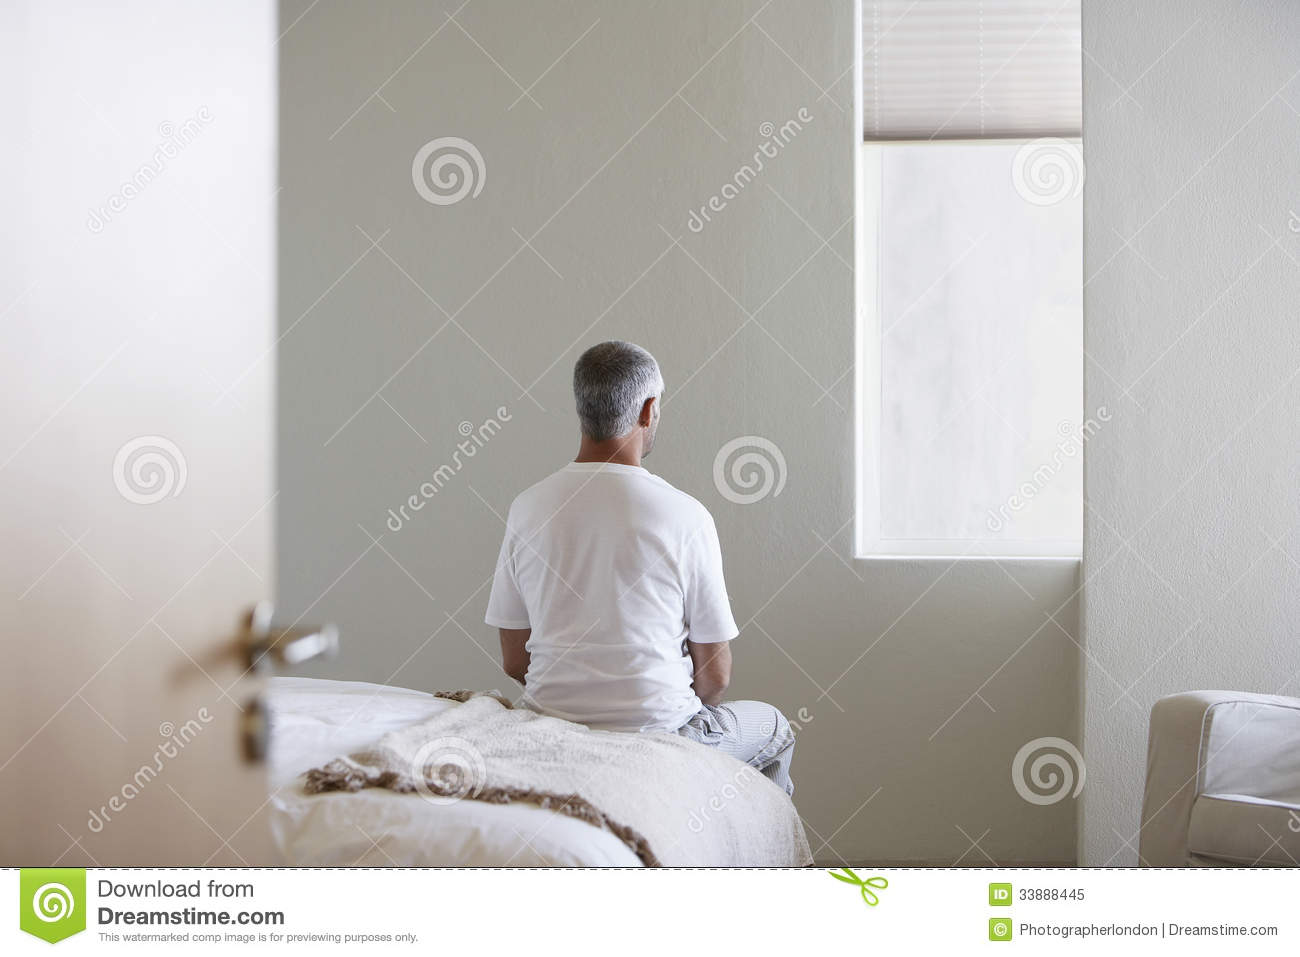 Man Sitting On Bed In Bedroom Royalty Free Stock Photo